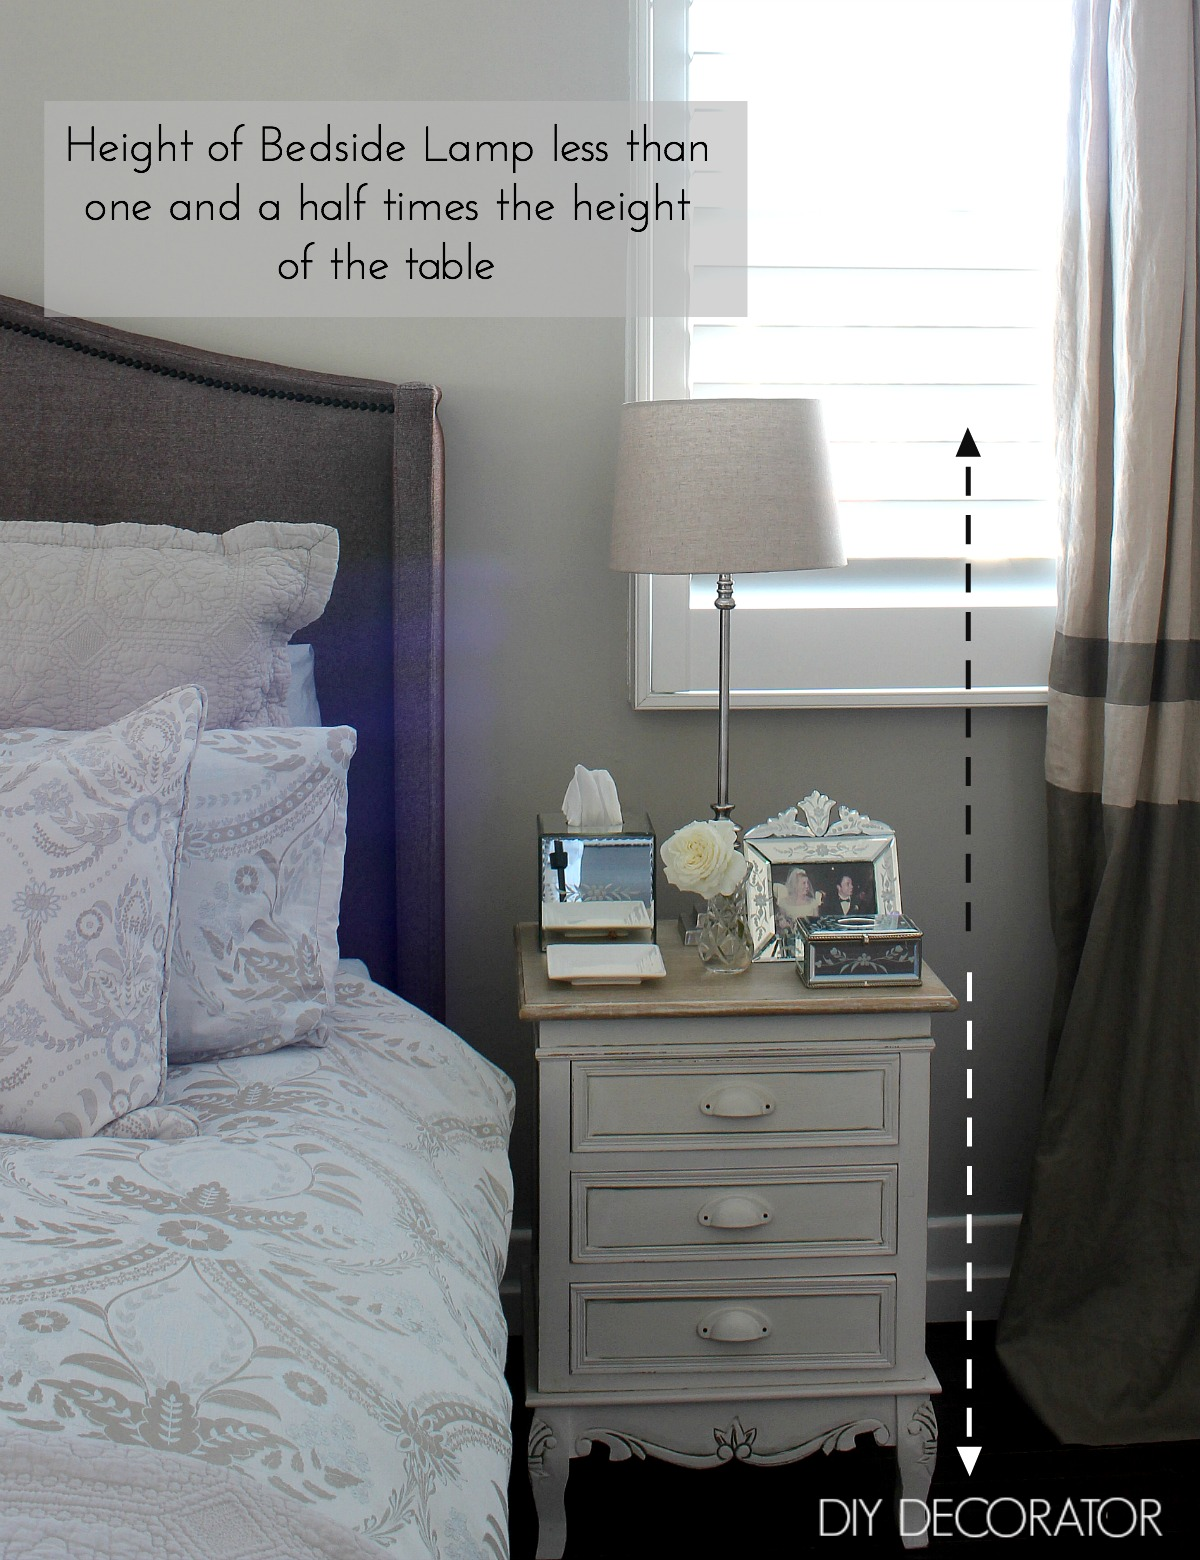 measure the height and the top of the bedside table the lamp will sit on the lamp should be no more than one and a half times the height of the table - Height Of Bedside Table